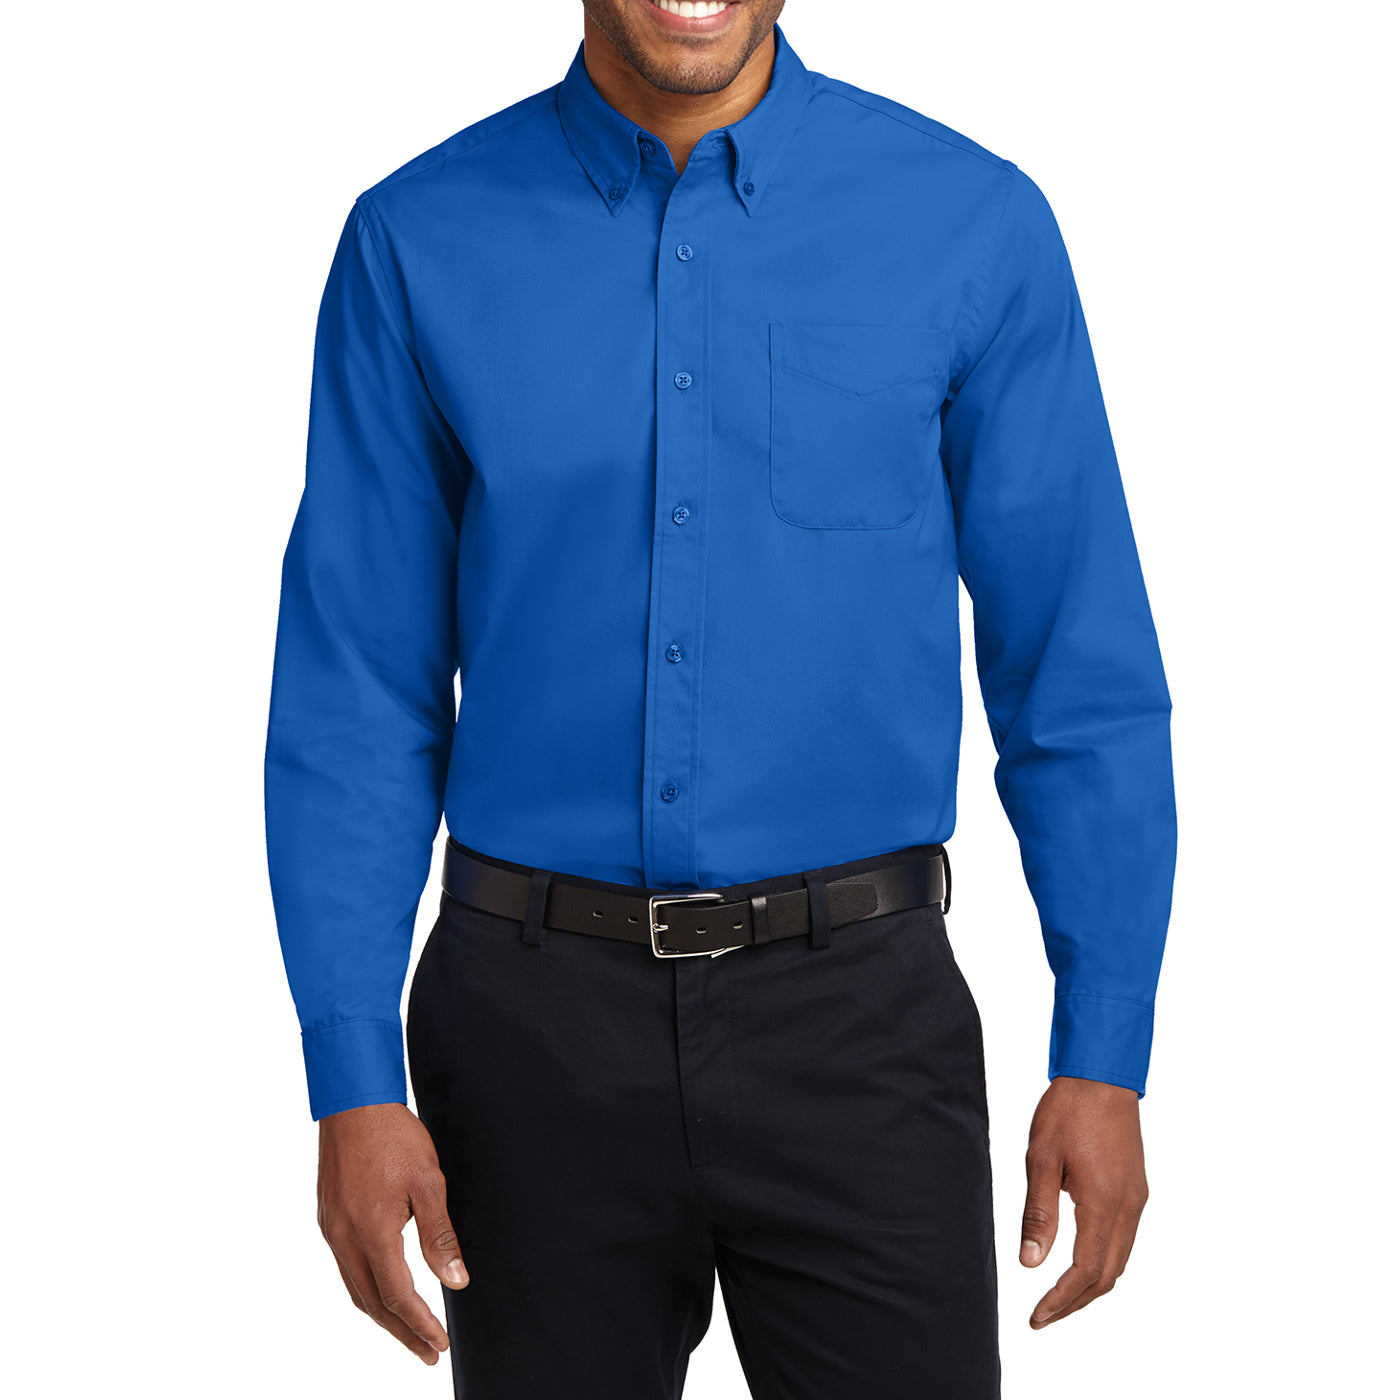 Men's Long Sleeve Easy Care Shirt - Strong Blue - Front